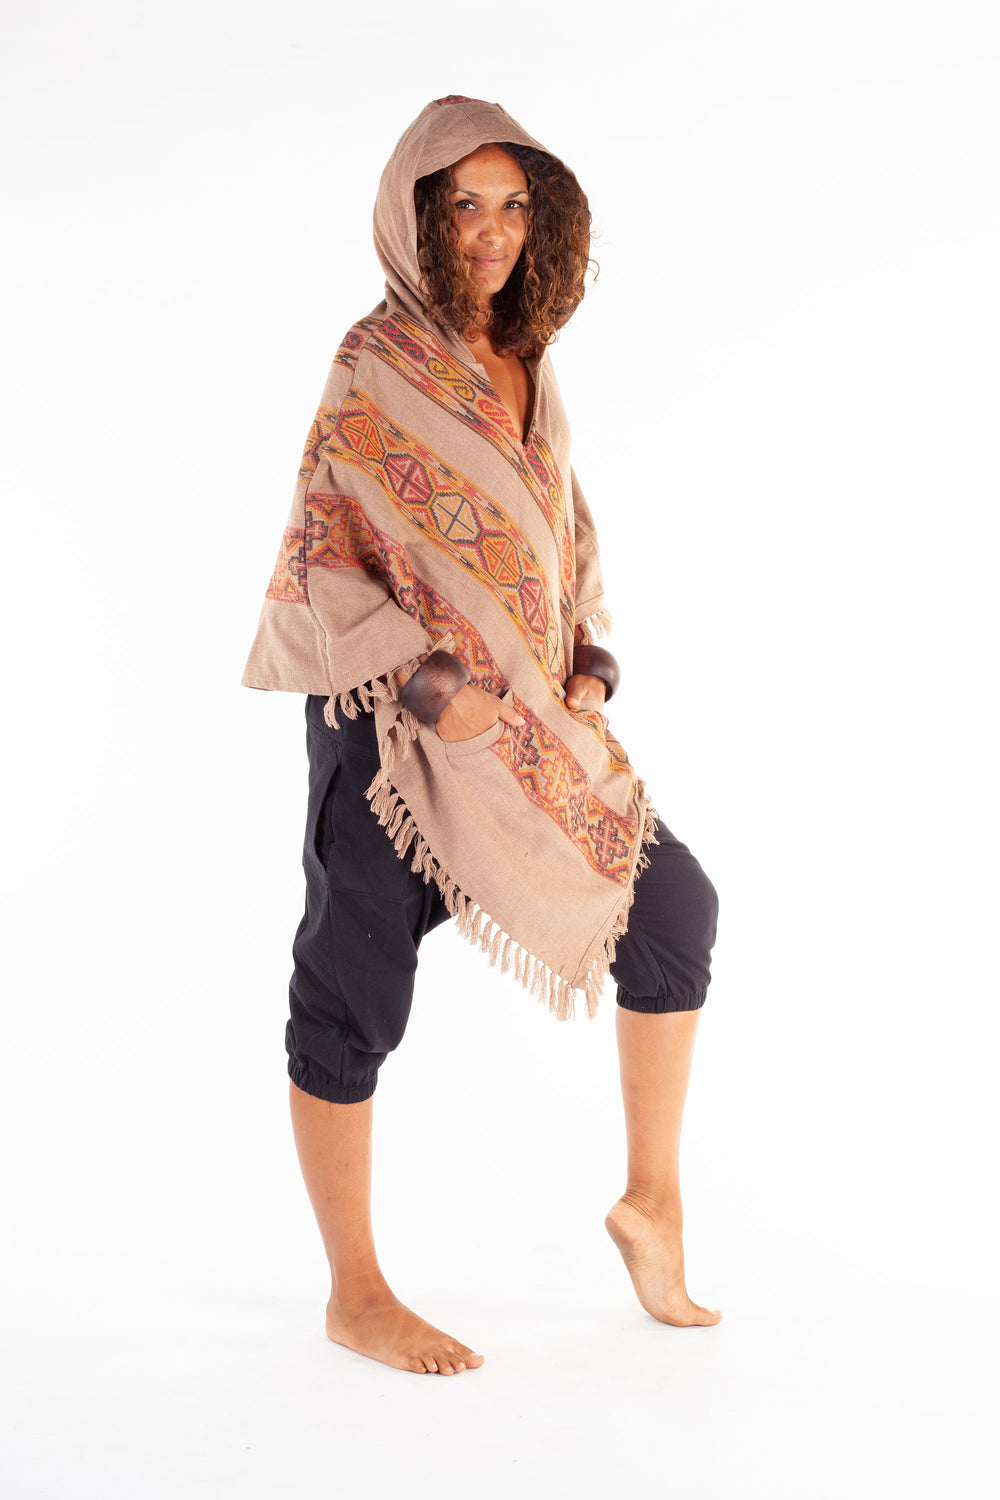 Womens Hooded Poncho Light Brown Cashmere Wool, with Tribal Embroidery, Large Hood, Two Pockets, Hippie, Primitive, Gypsy, Boho, AJJAYA